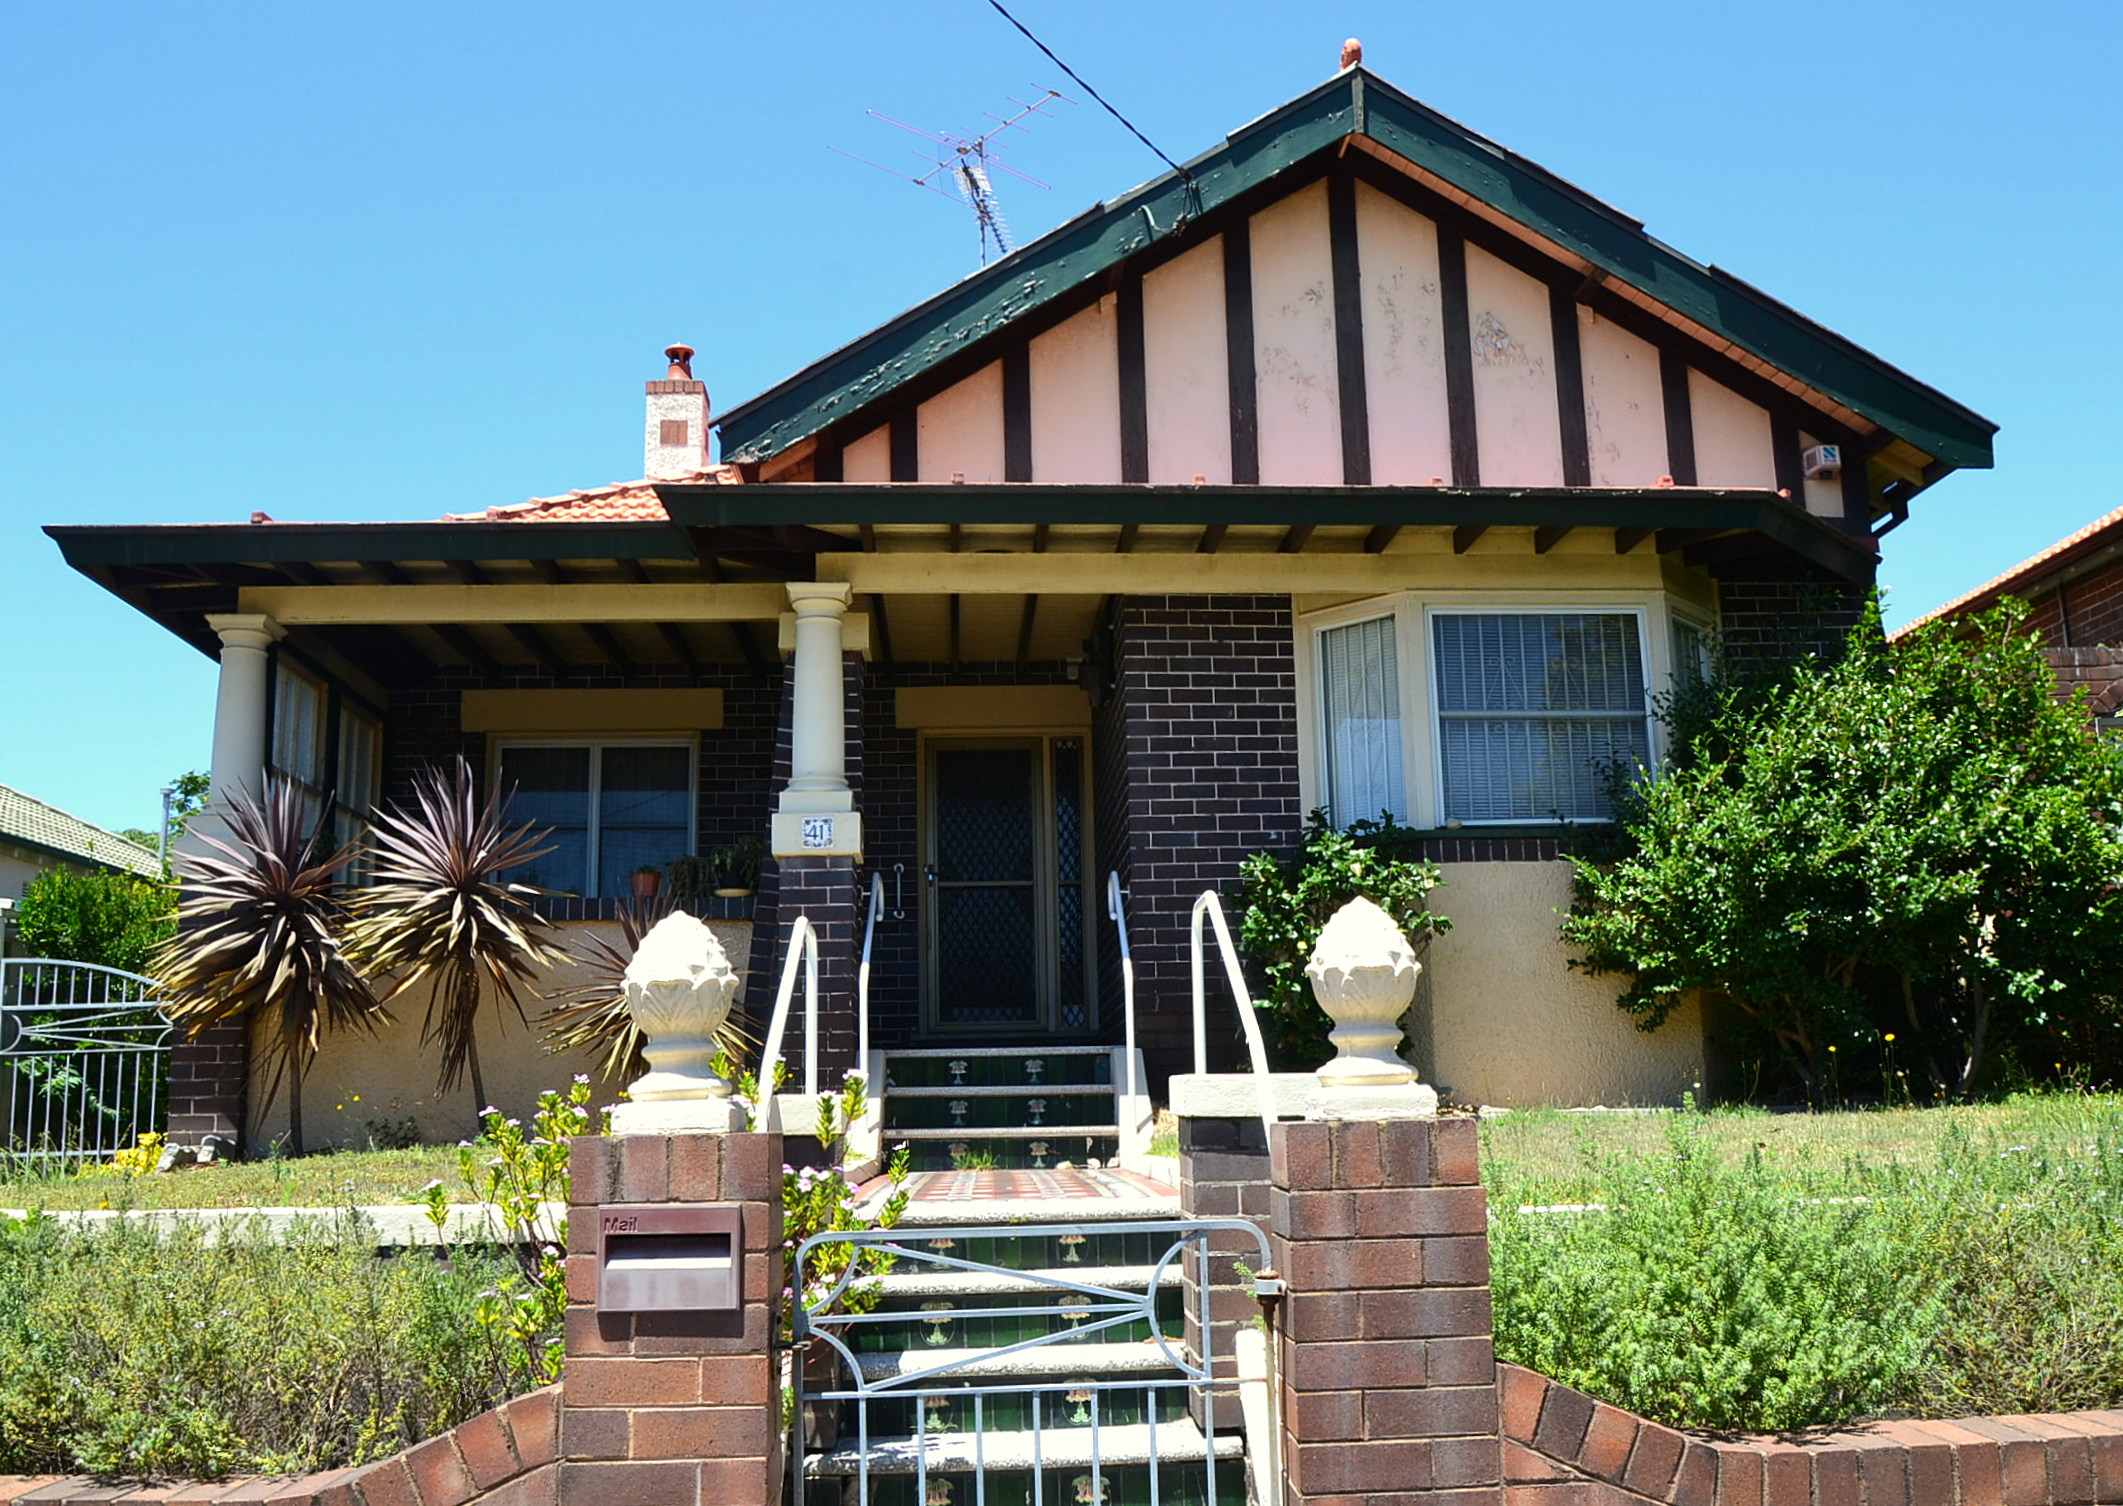 File:(1)California Bungalow Sydney-2.jpg - Wikimedia Commons